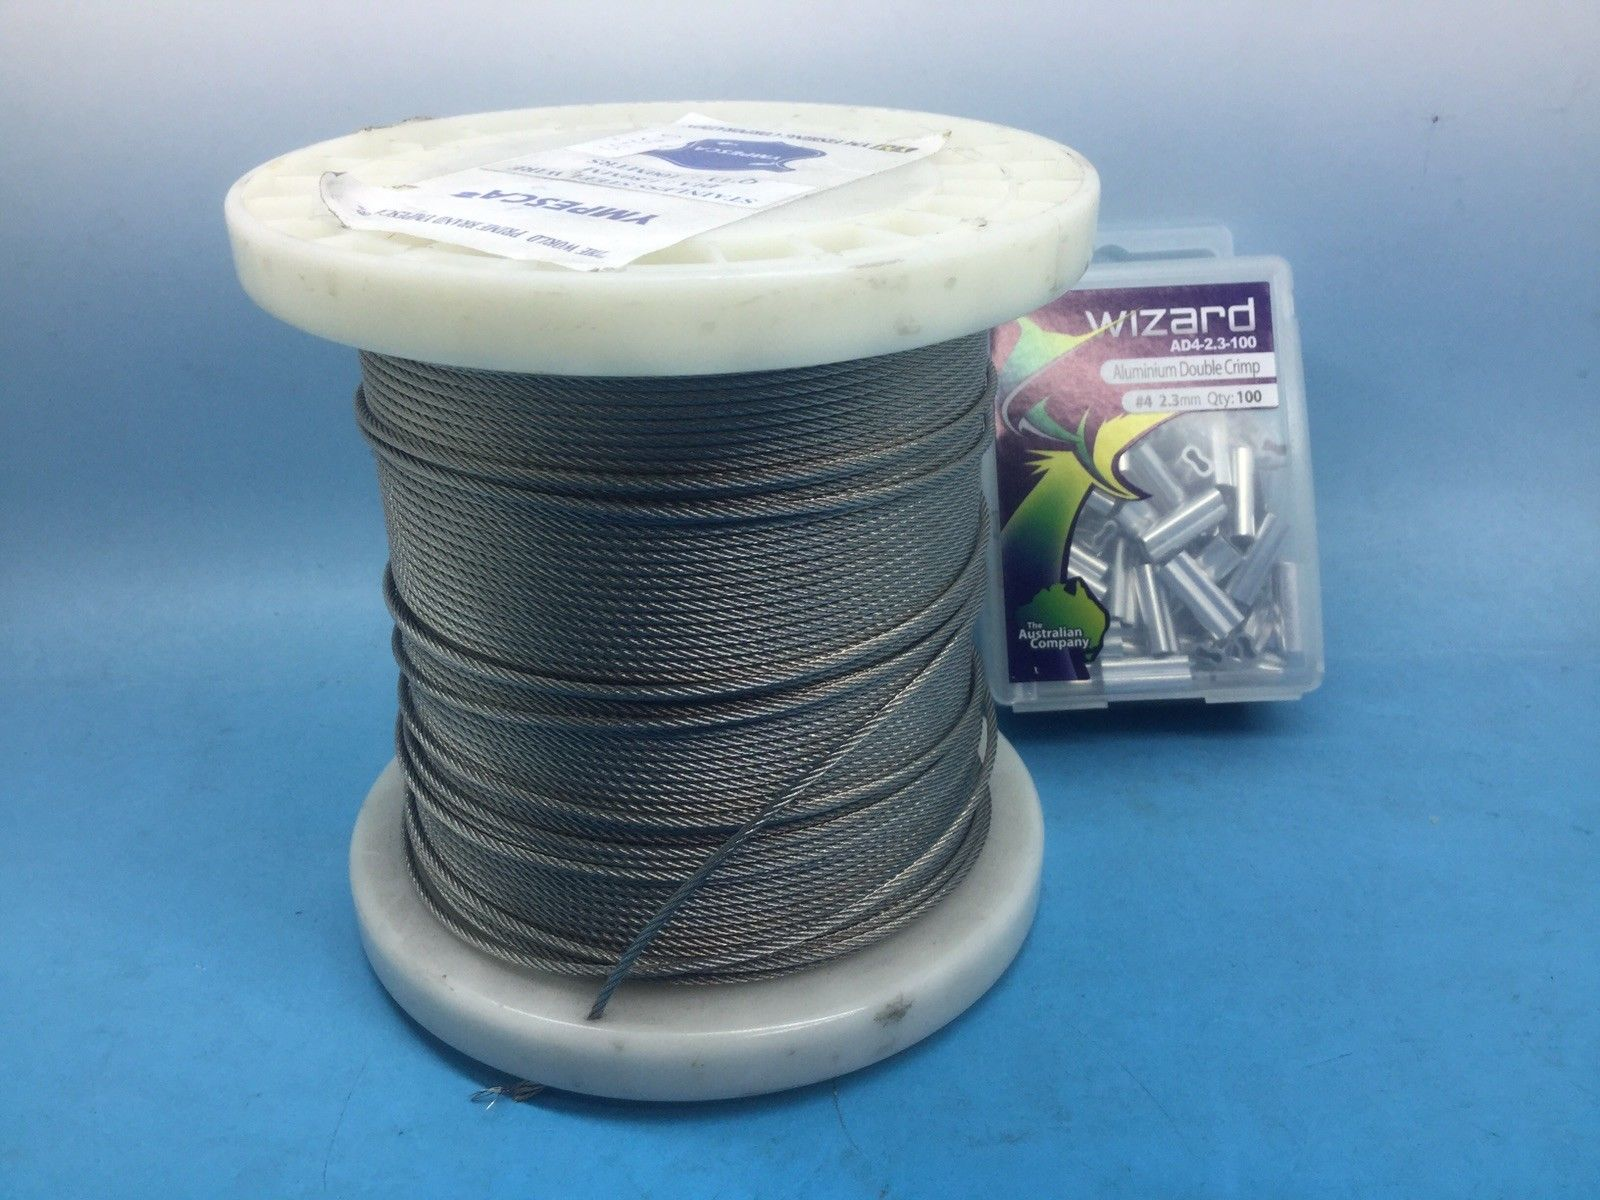 Stainless Steel 7 X 7 Wire X 100 M Plus Crimps